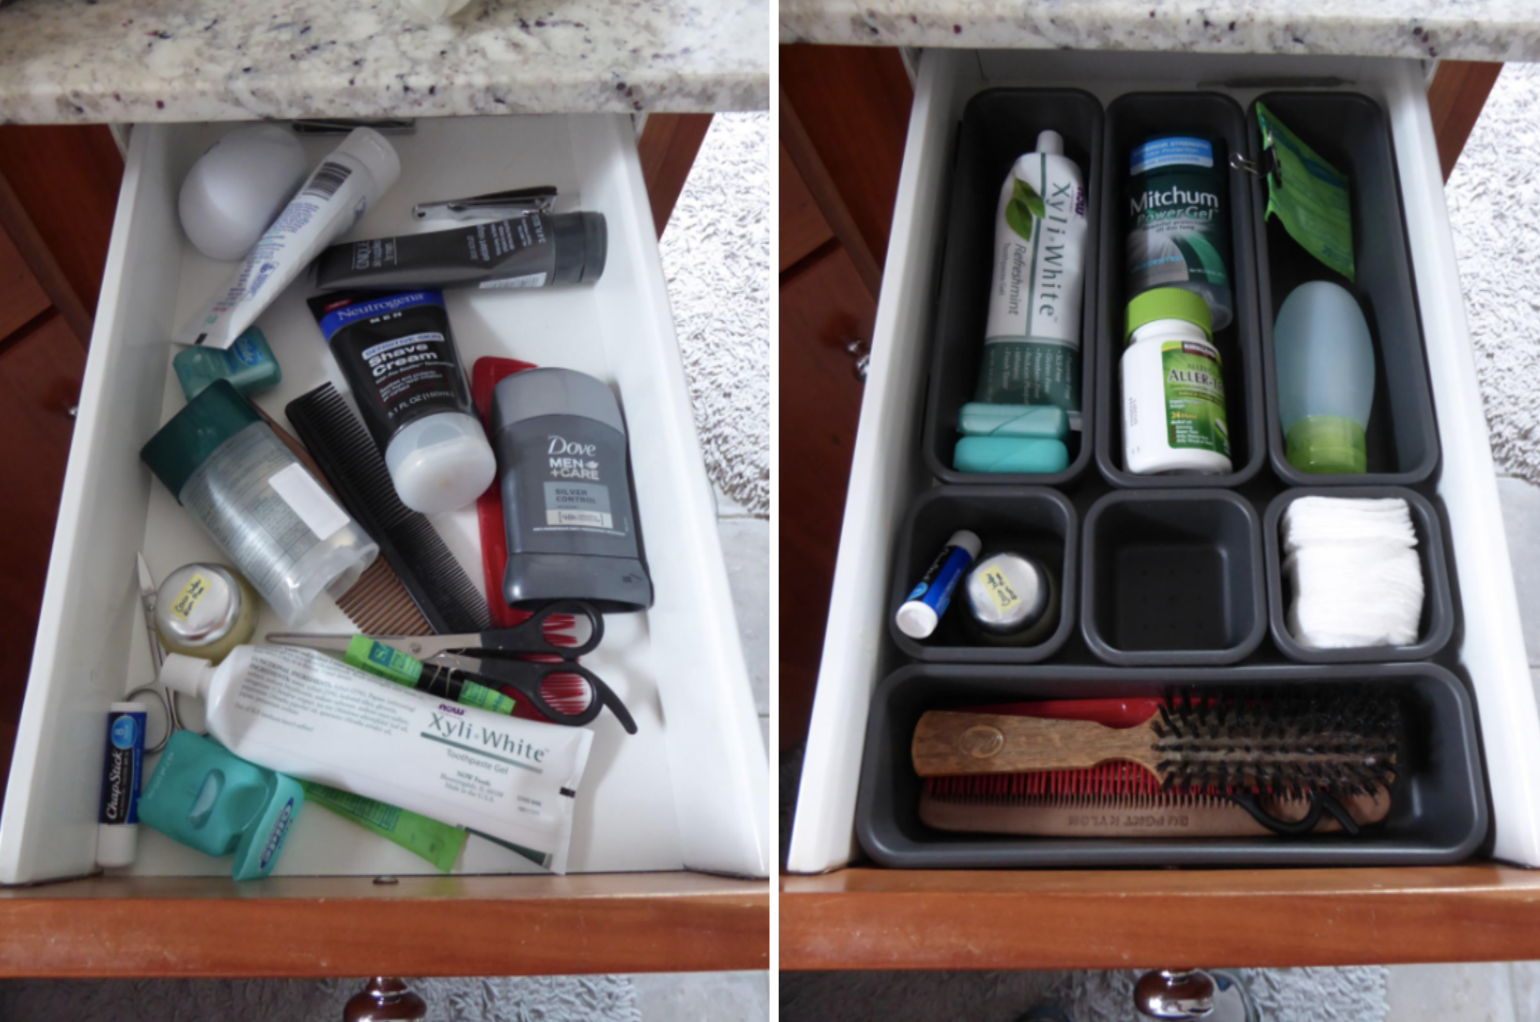 before/after image of reviewer's cluttered drawer, and after showing more organization with bins